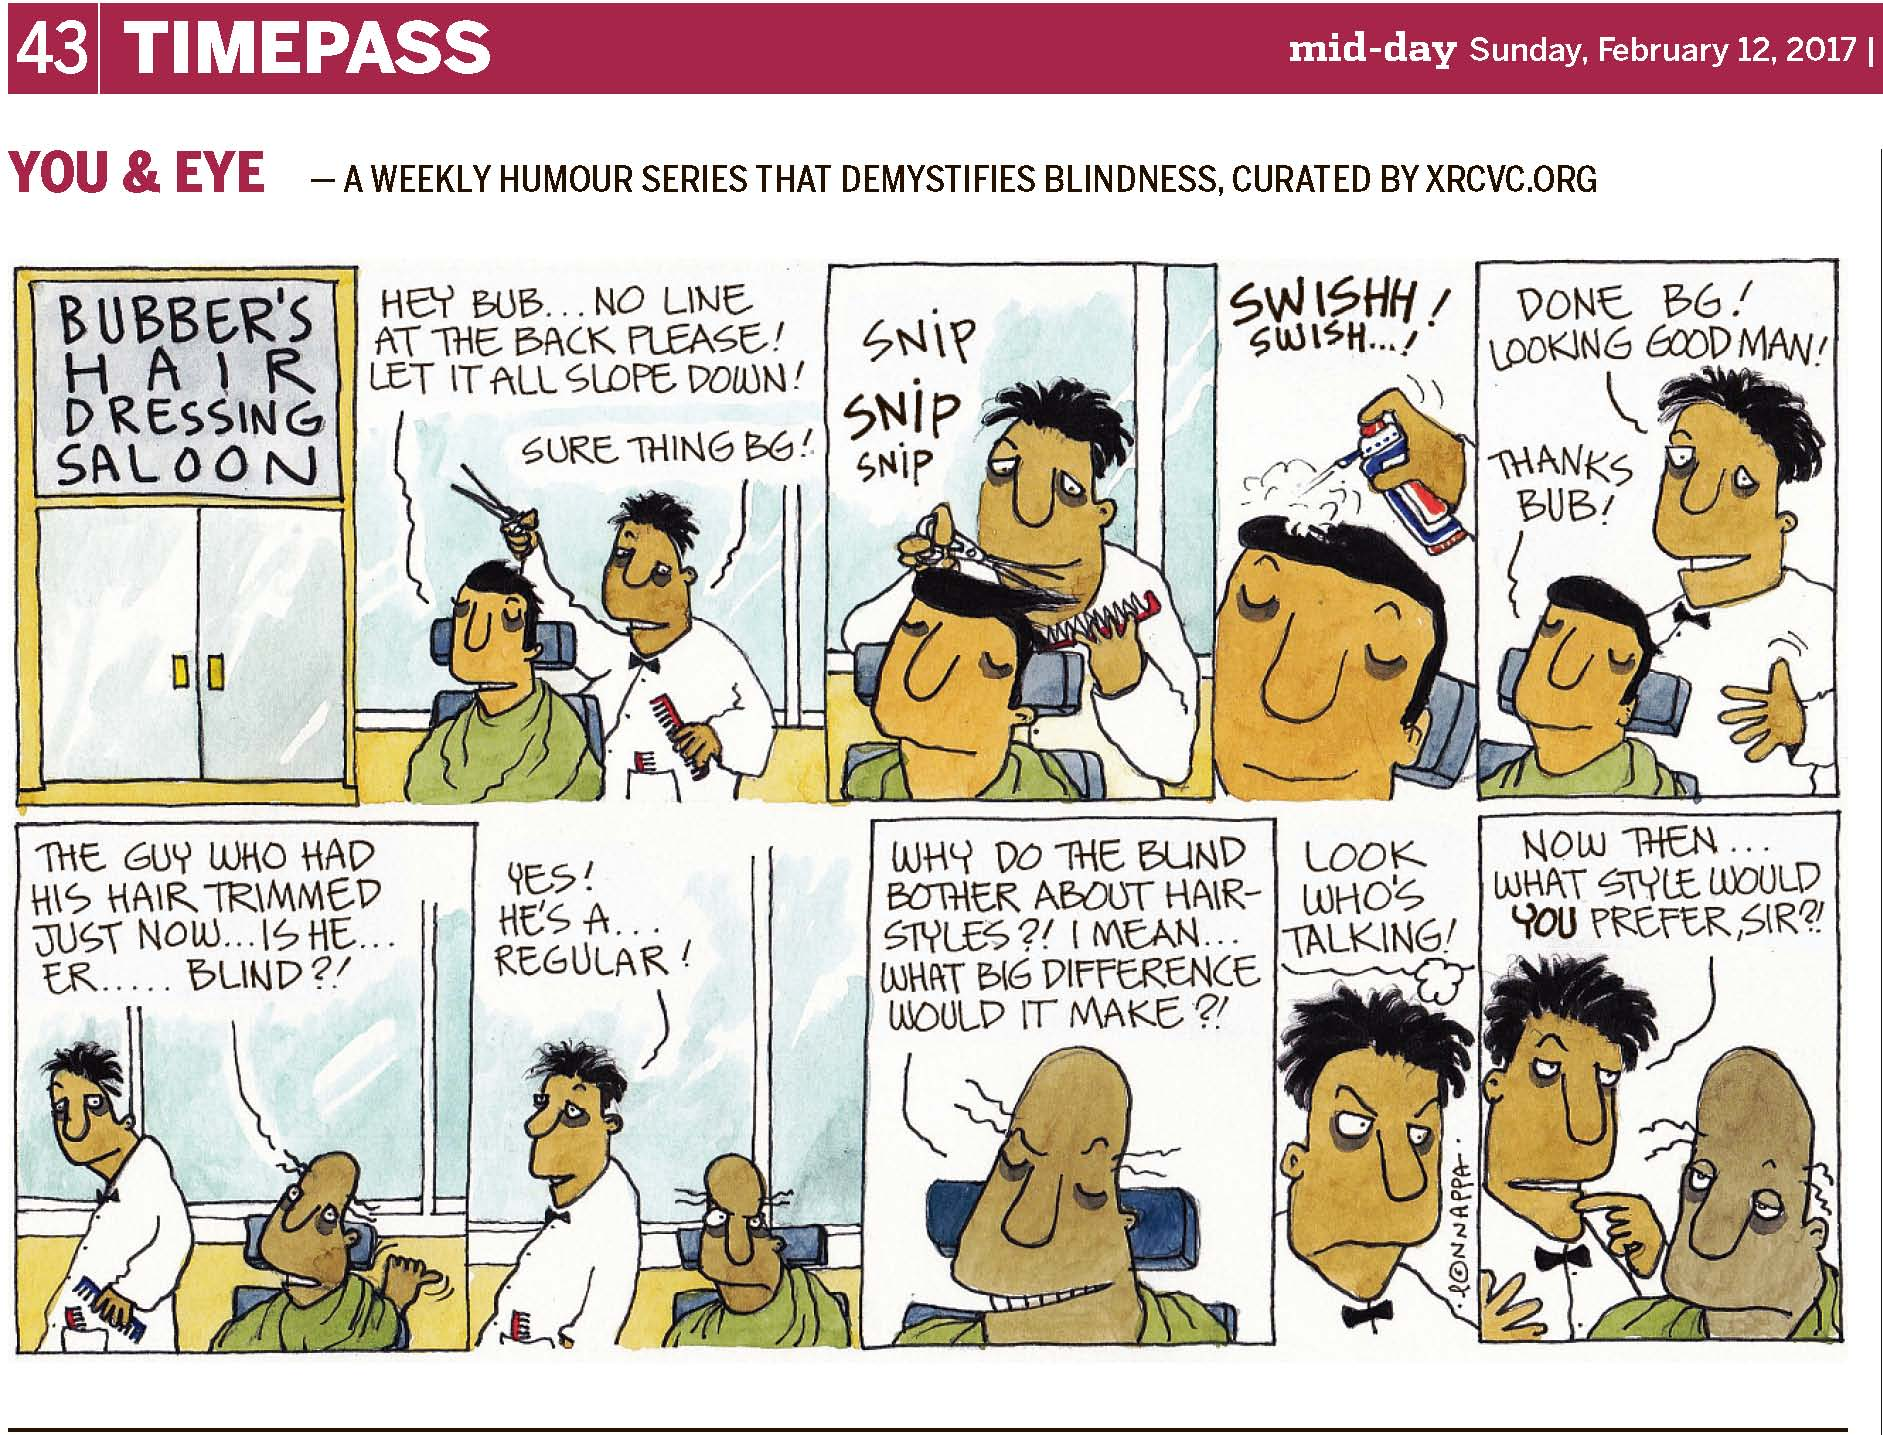 (top-left) 43 | TIMEPASS (top-right) mid-day Sunday, February 12, 2017 YOU & EYE – A WEEKLY HUMOUR SERIES THAT DEMYSTIFIES BLINDNESS, CURATED BY XRCVC.ORG Image description: A cartoon strip with 10 frames… Frame 1: (Closed glass doors are seen with a signboard above that reads